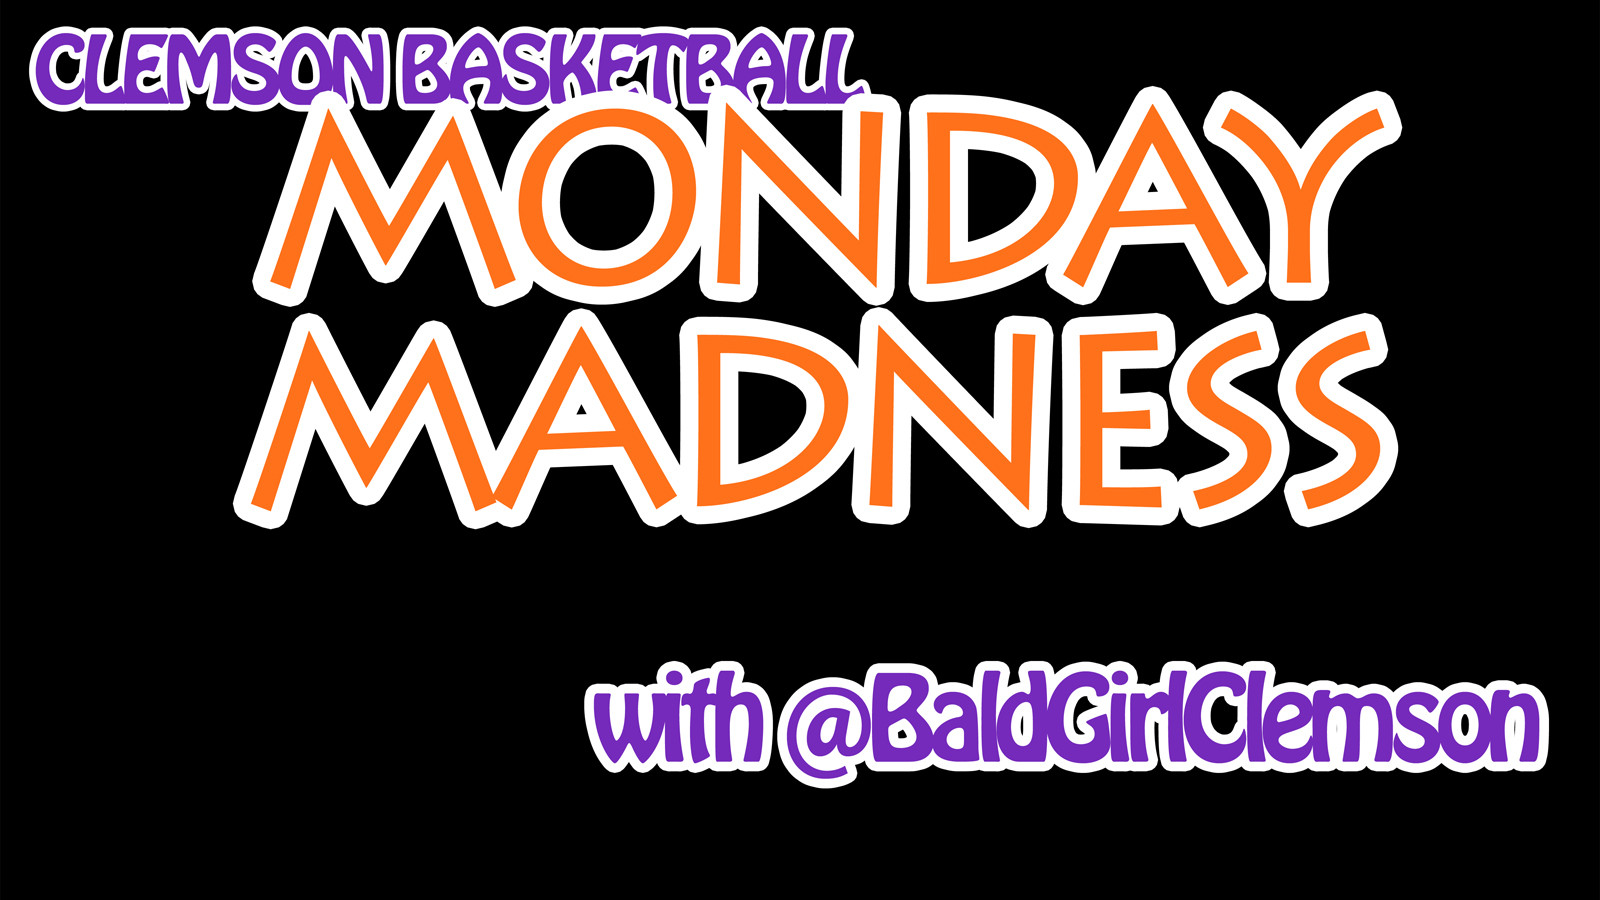 Monday Madness with Clemson Basketball Starts This Week